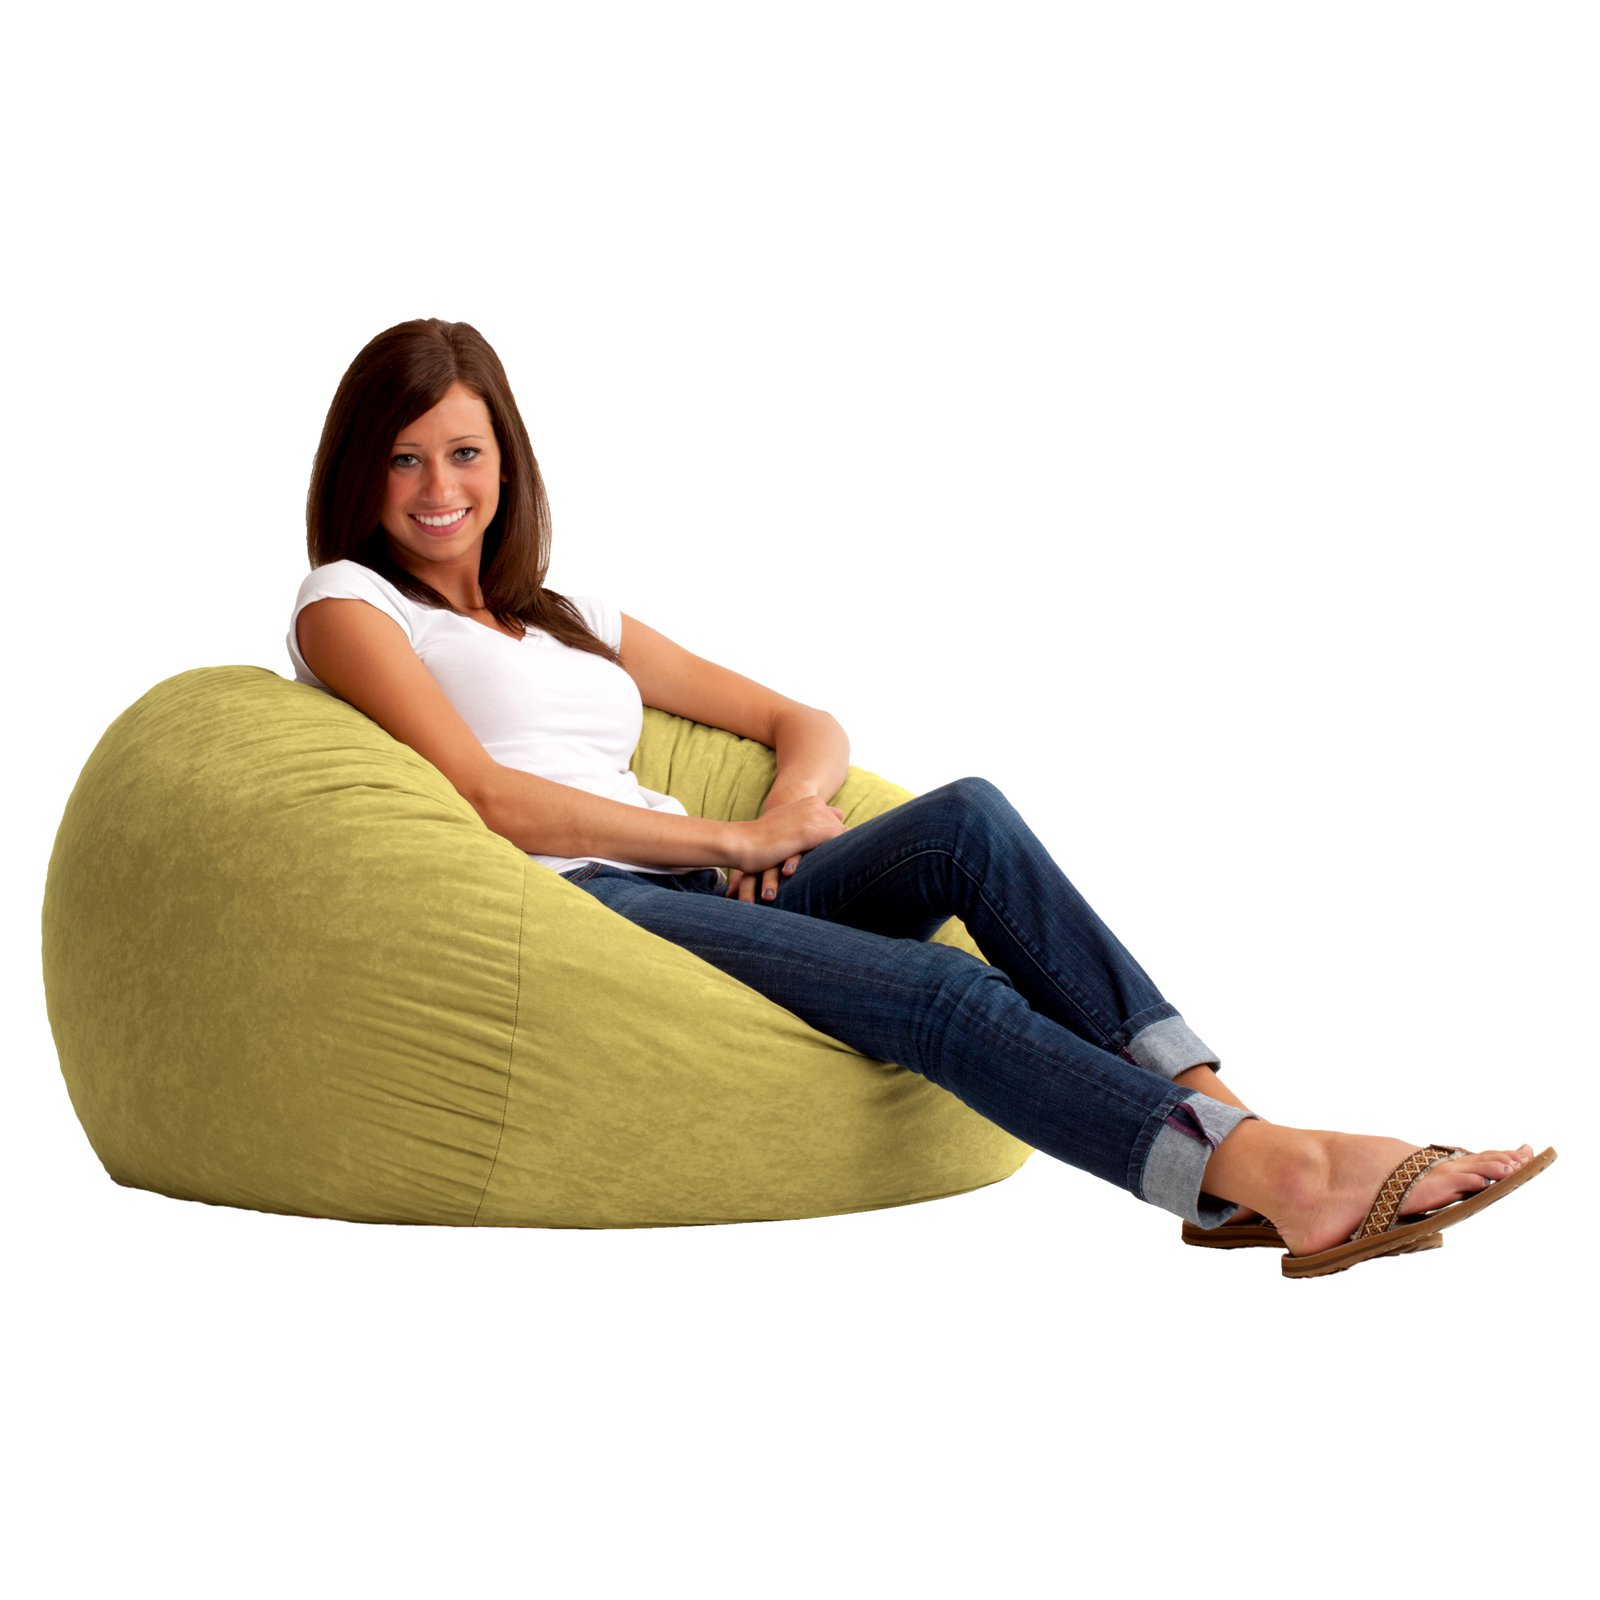 3u0027 Fuf Comfort Suede Bean Bag, Multiple Colors   Walmart.com